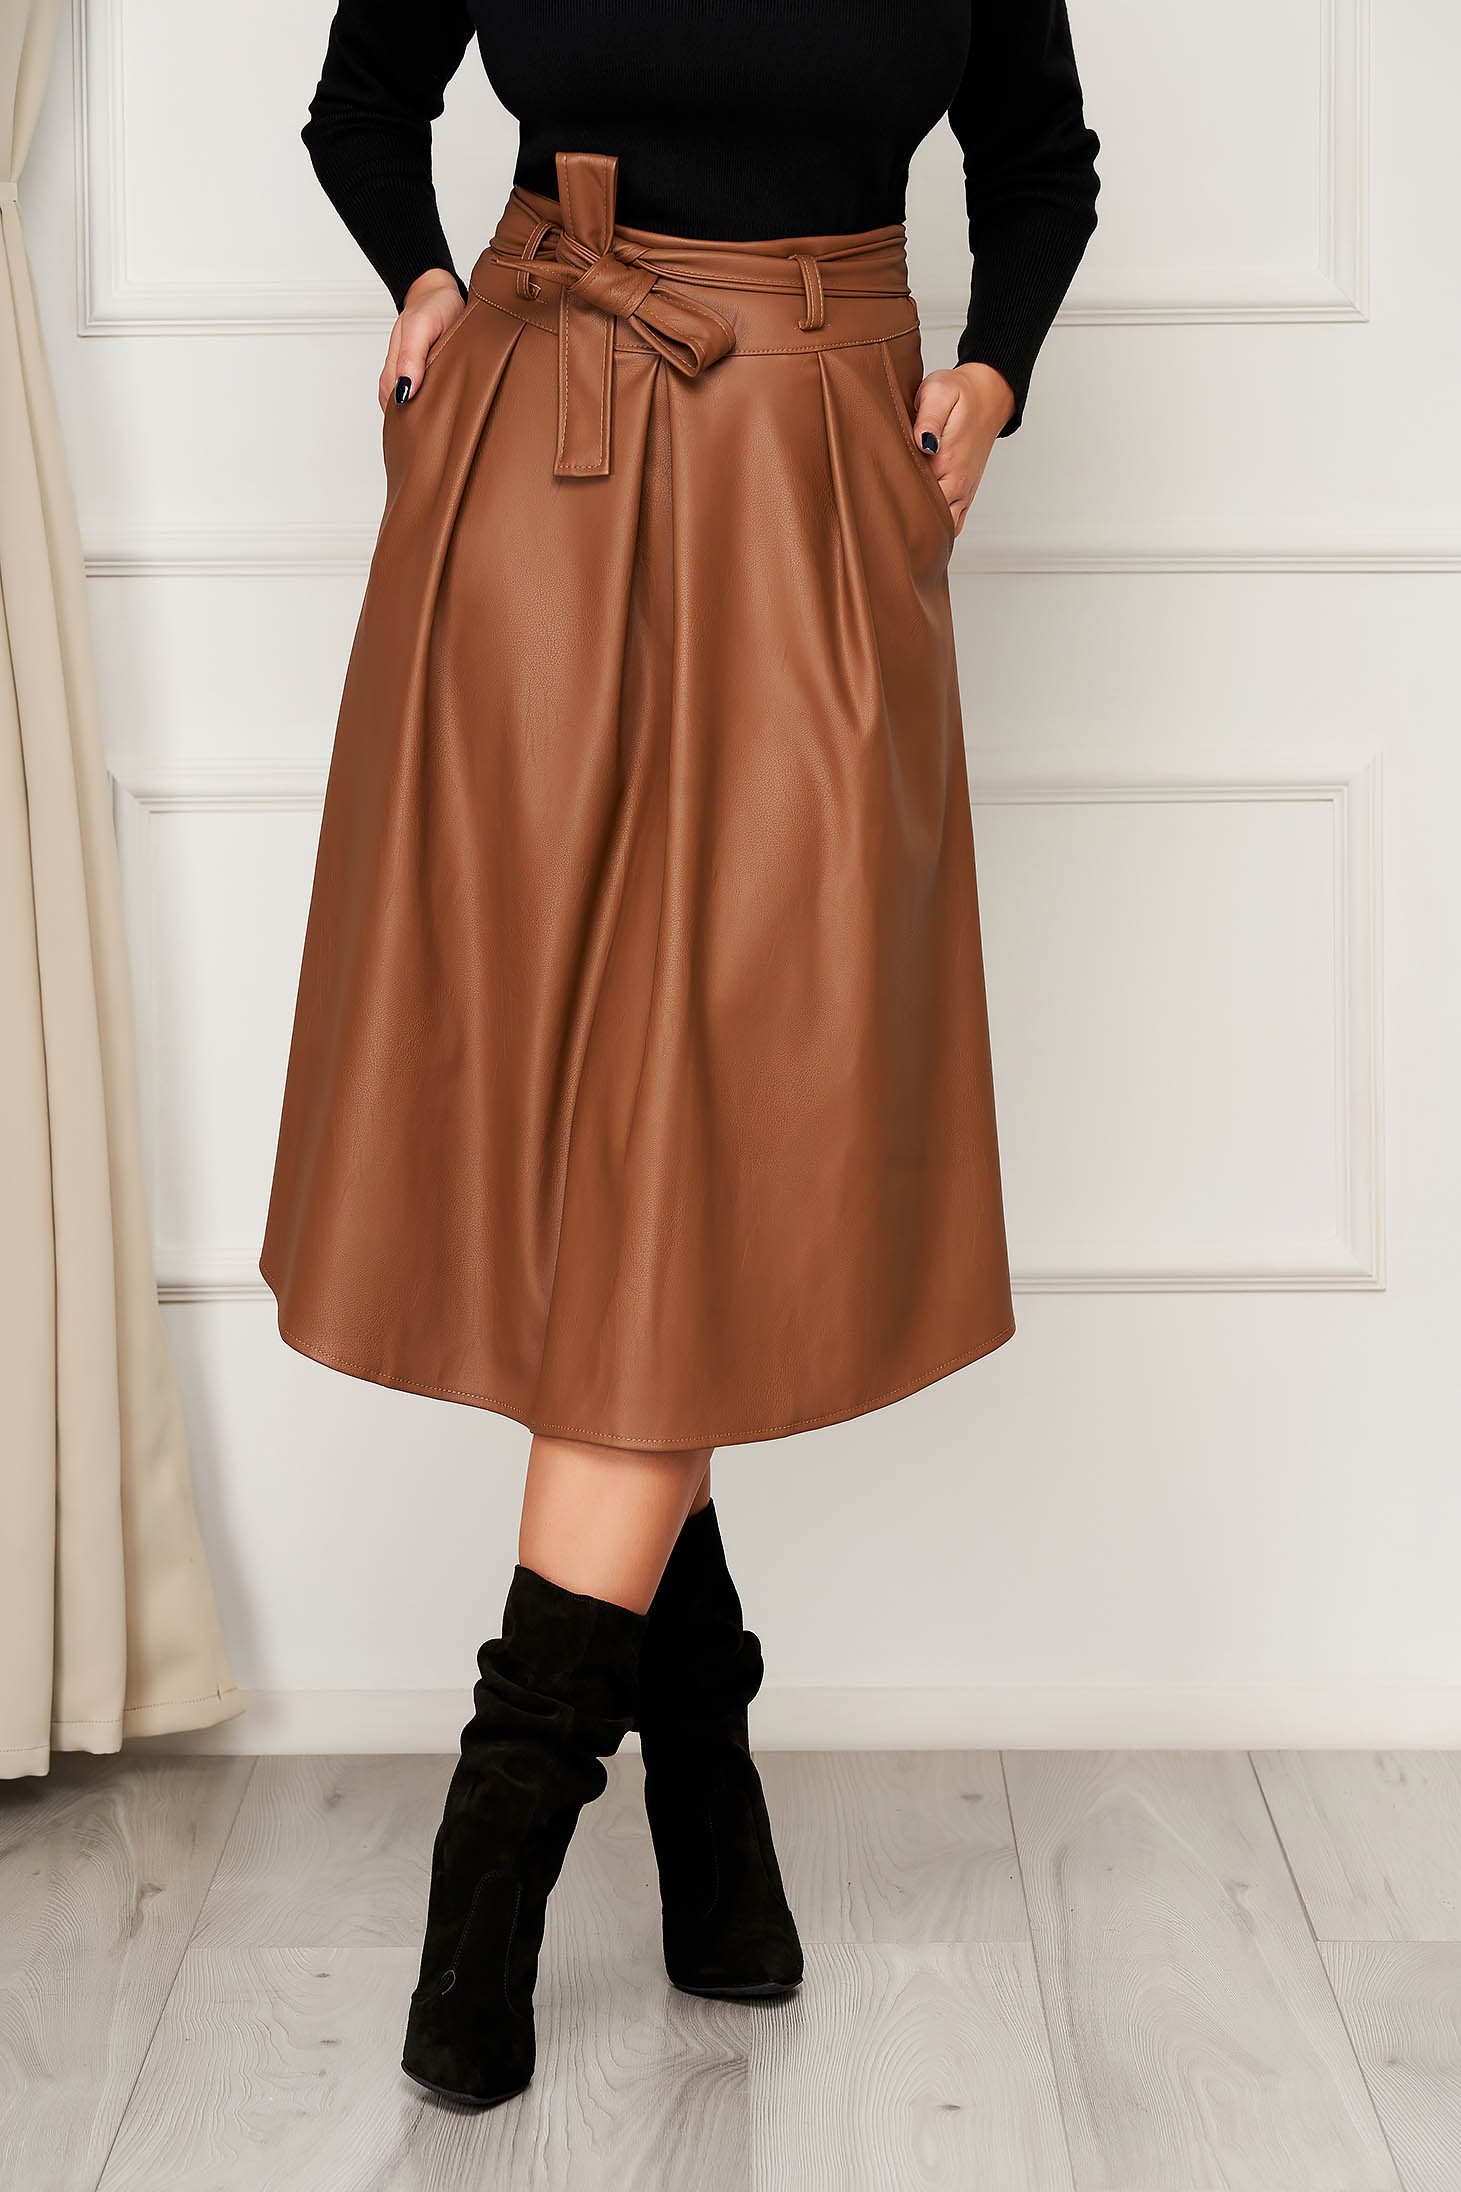 Brown skirt casual midi cloche with pockets from ecological leather